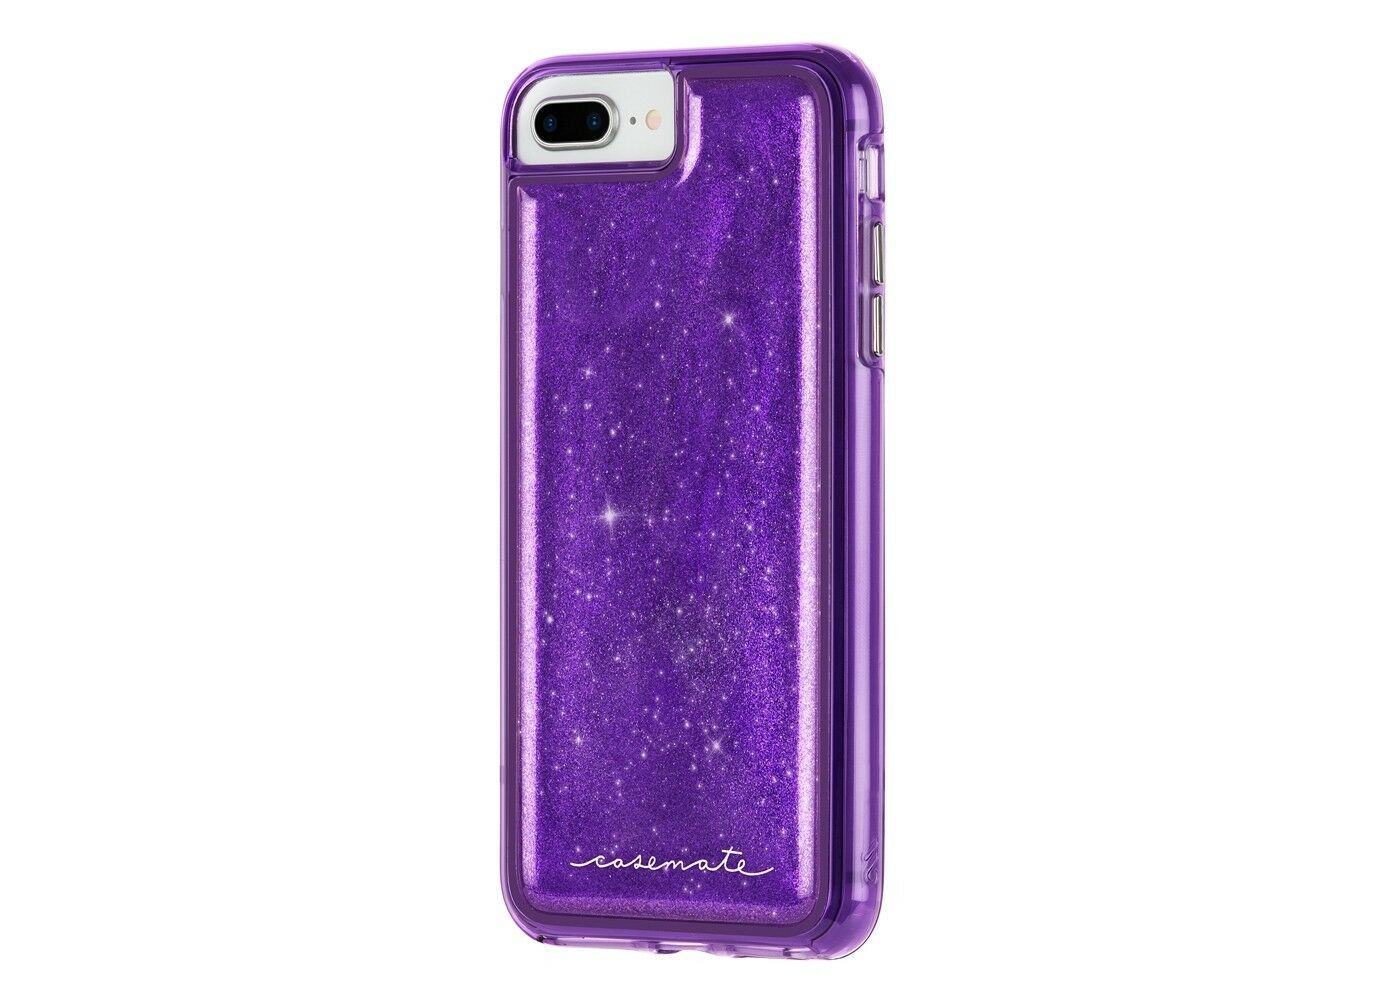 Case-Mate Apple iPhone 8 Plus/7 Plus/6s Plus/6 Plus Squish Case